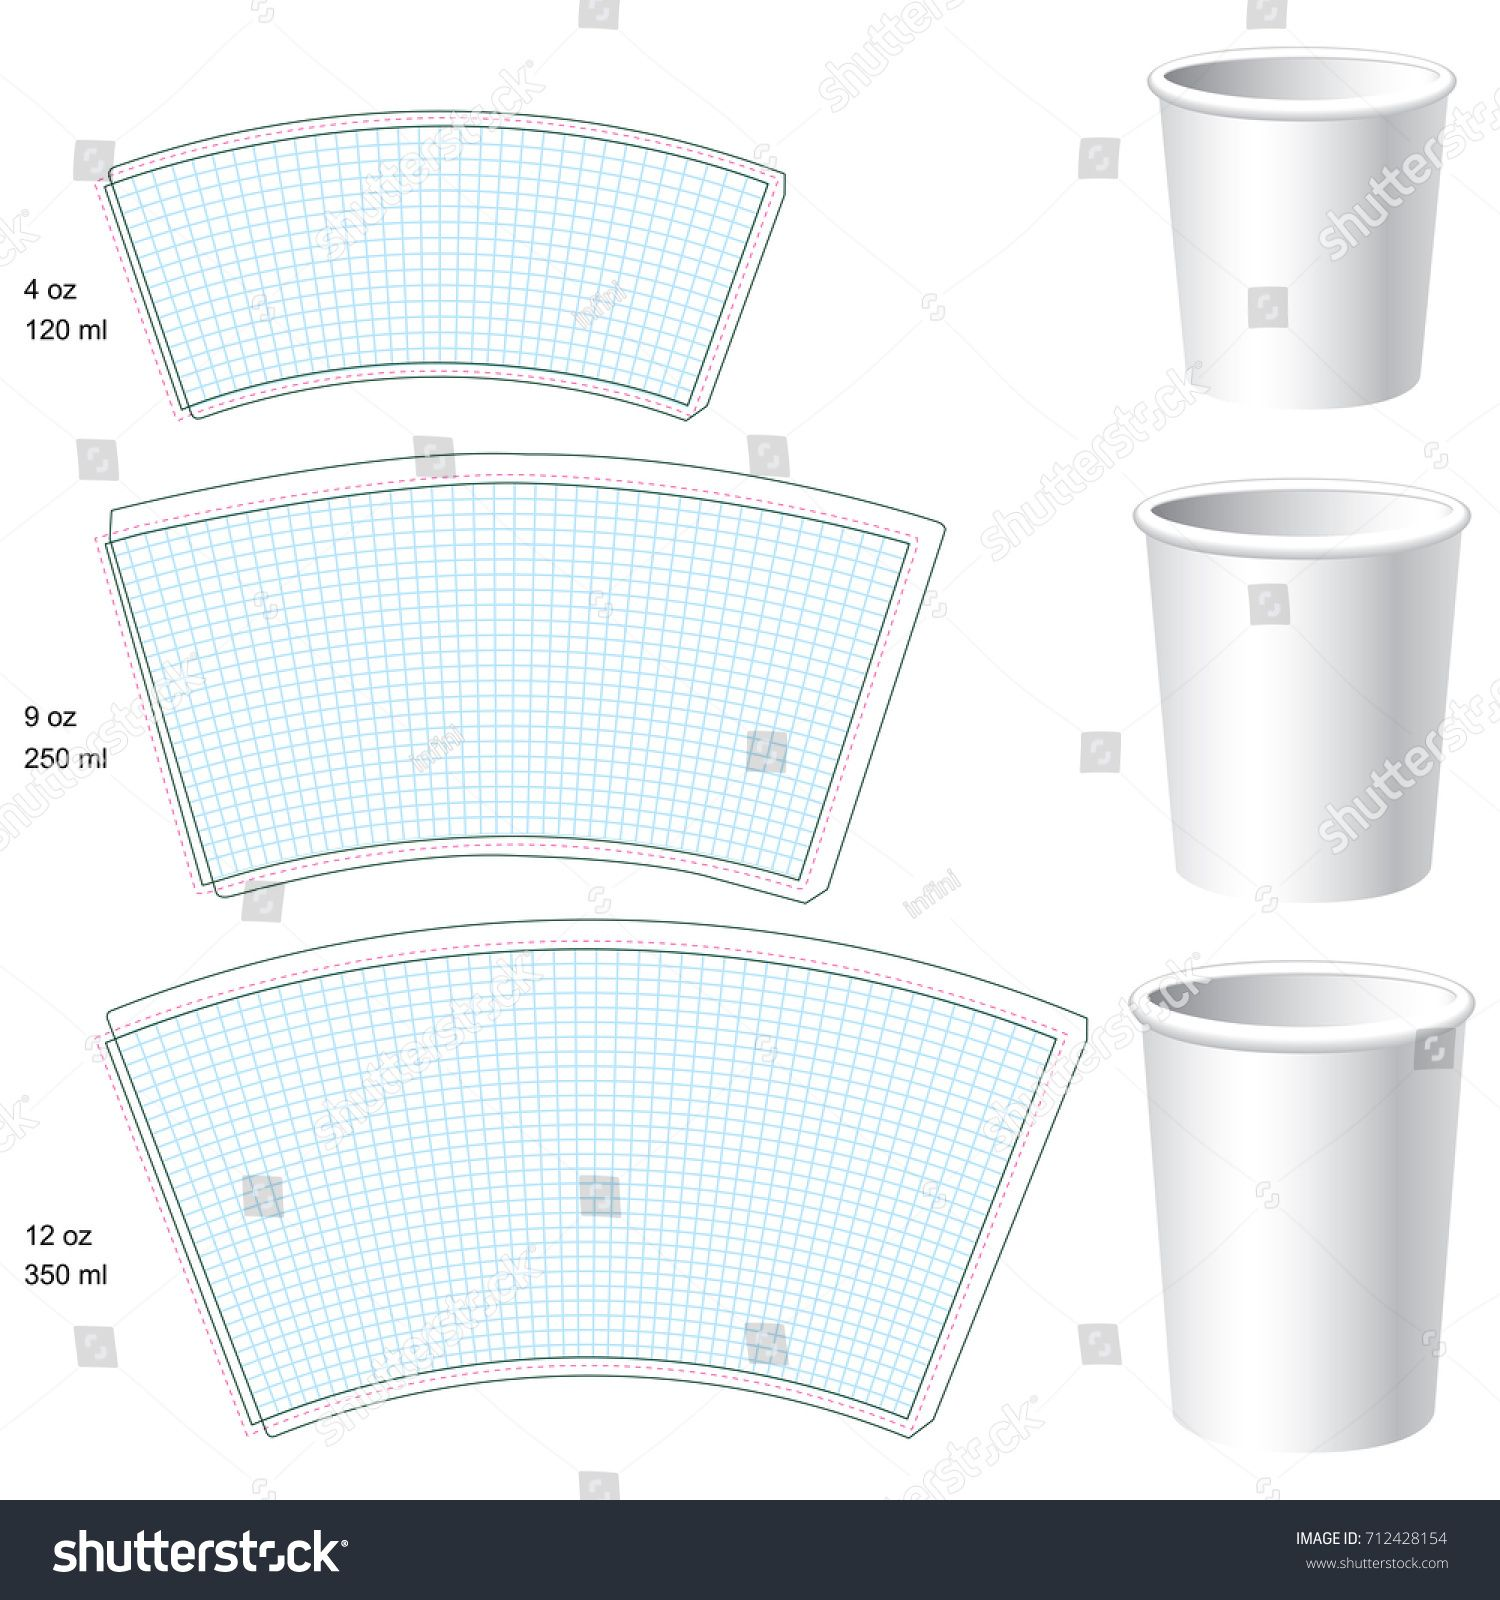 Paper Cup Vector Blank Templates 3 Stock Vector (Royalty ...